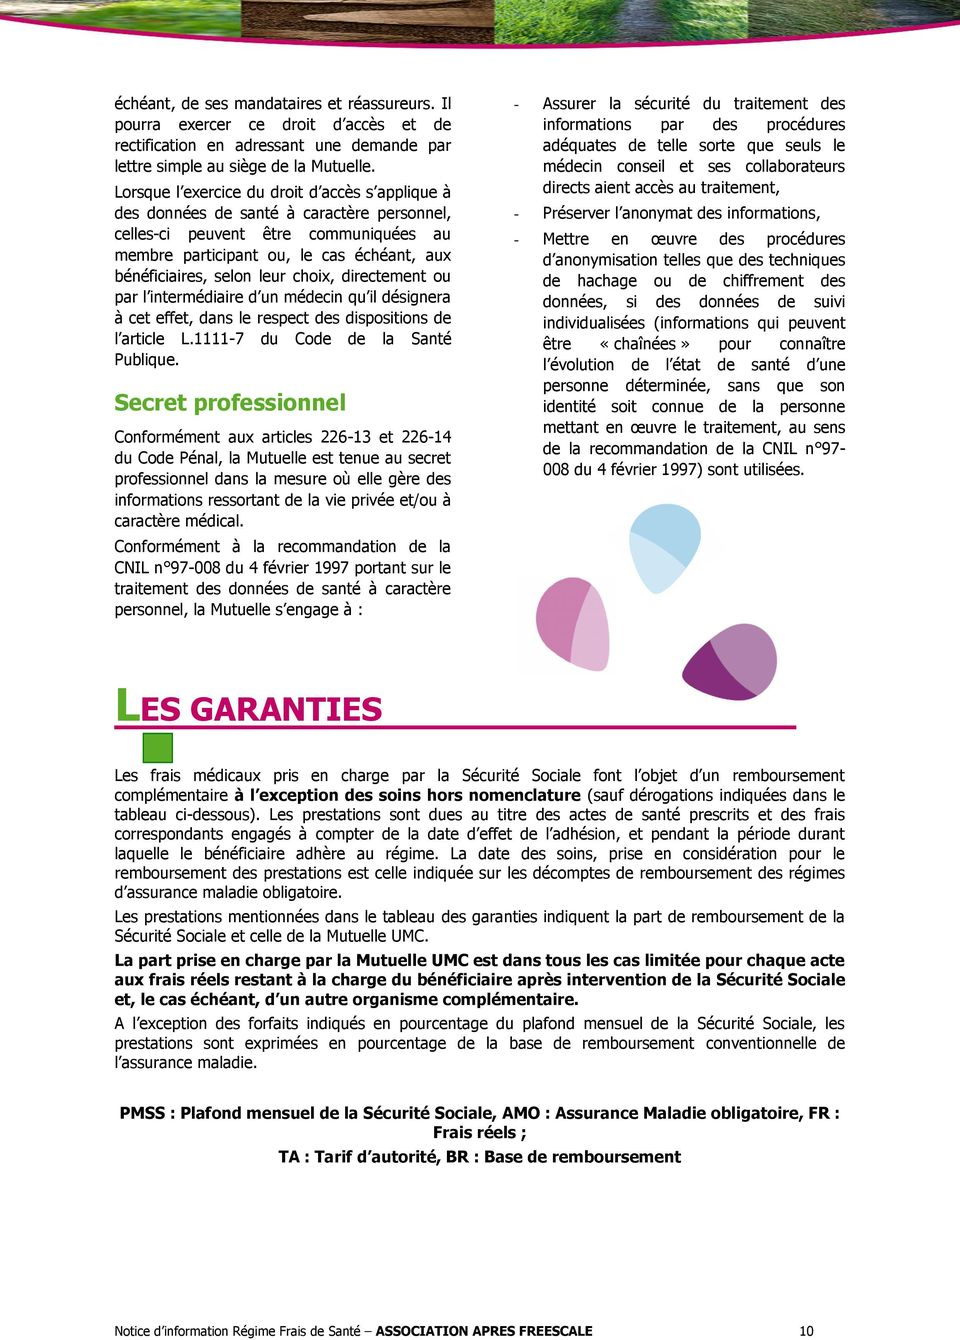 Association apres freescale pdf - Plafond remboursement securite sociale ...